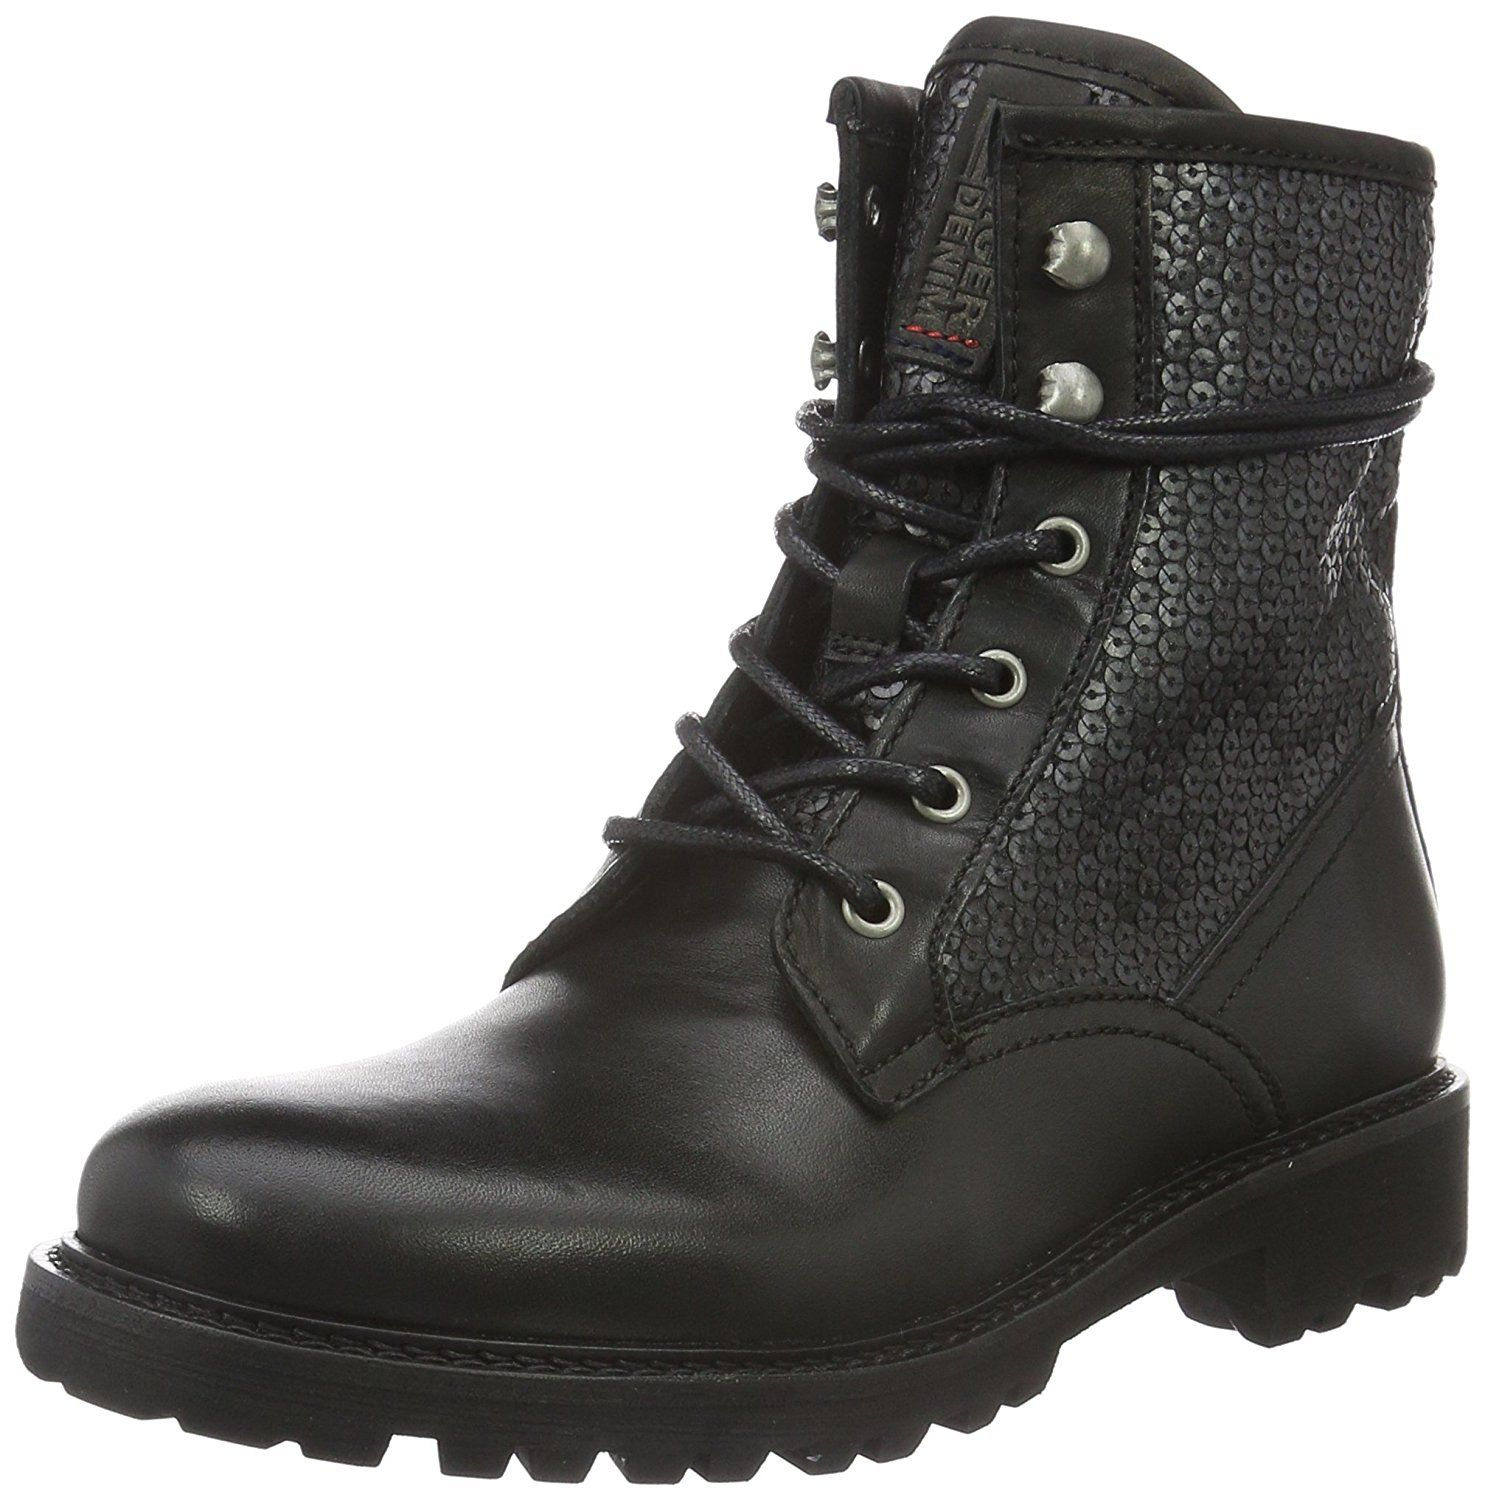 Boots Warm And Shaft Lined Vagabond KenovaWomen's Short b6gfY7y